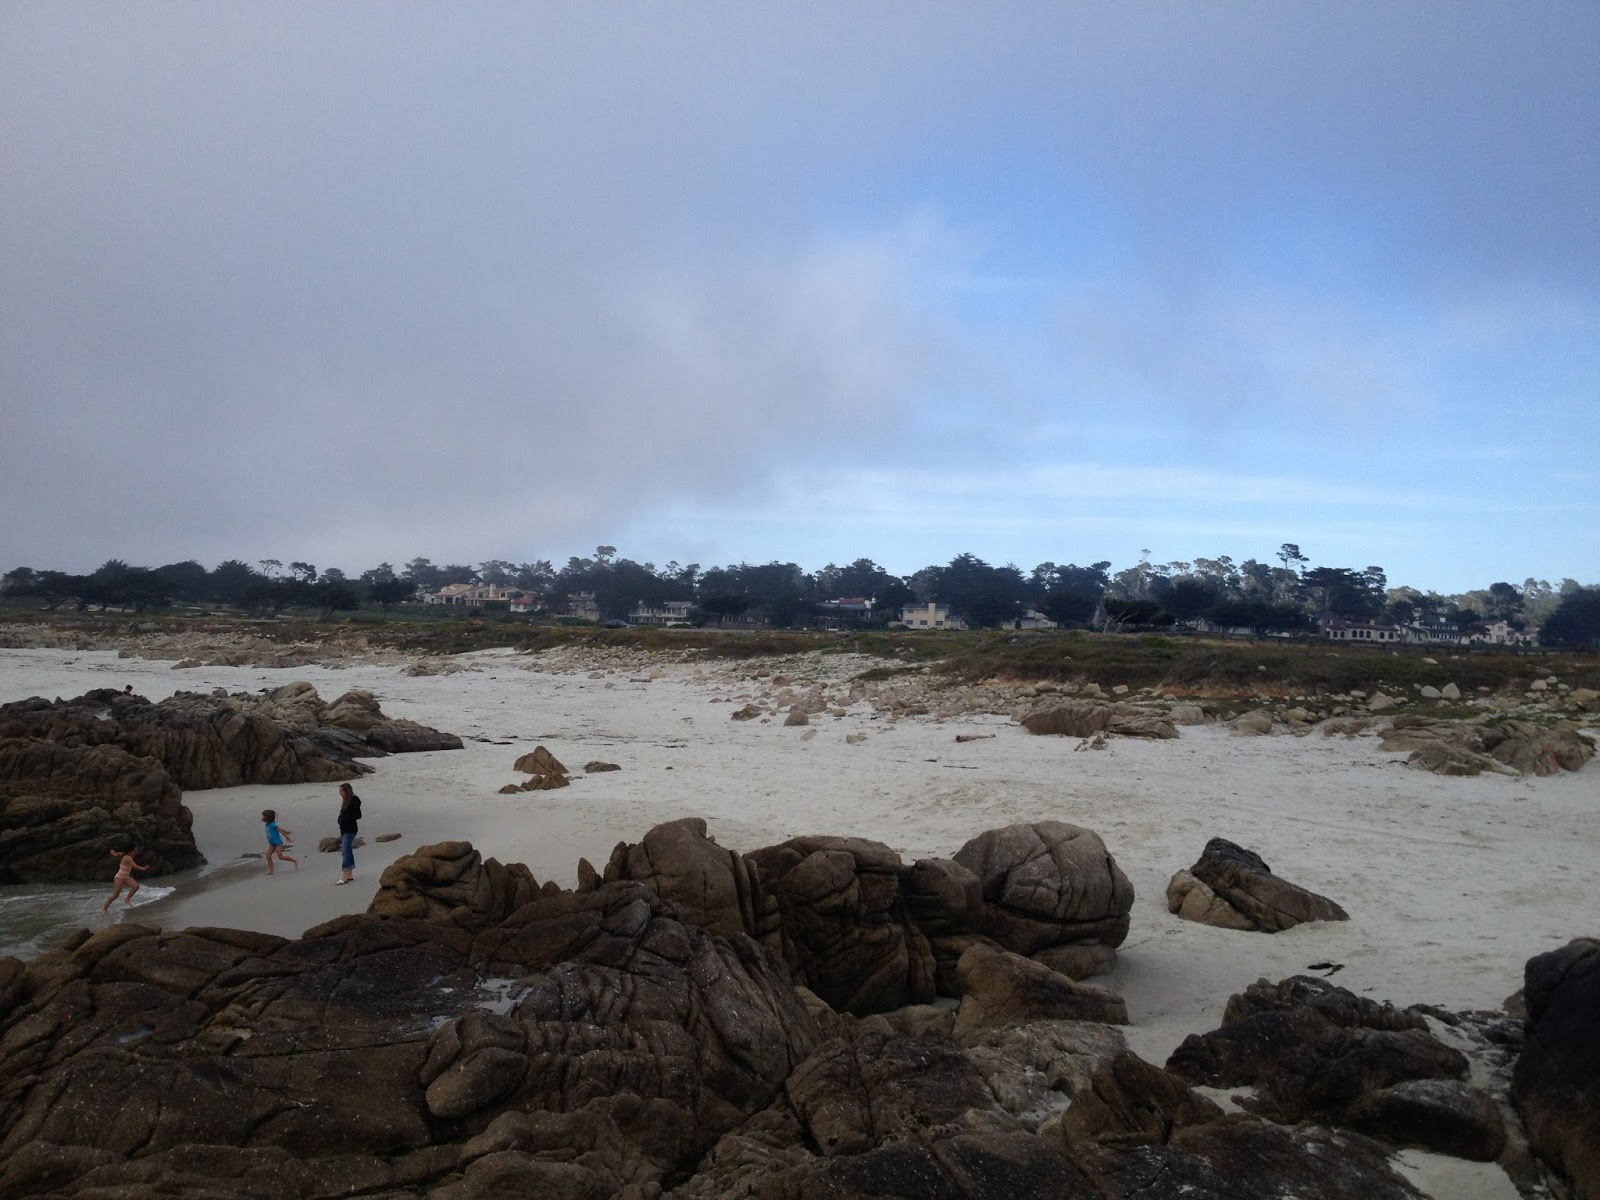 image 1 a view of the rocks exposed along the shore next to 17 mile drive in pebble beach ca